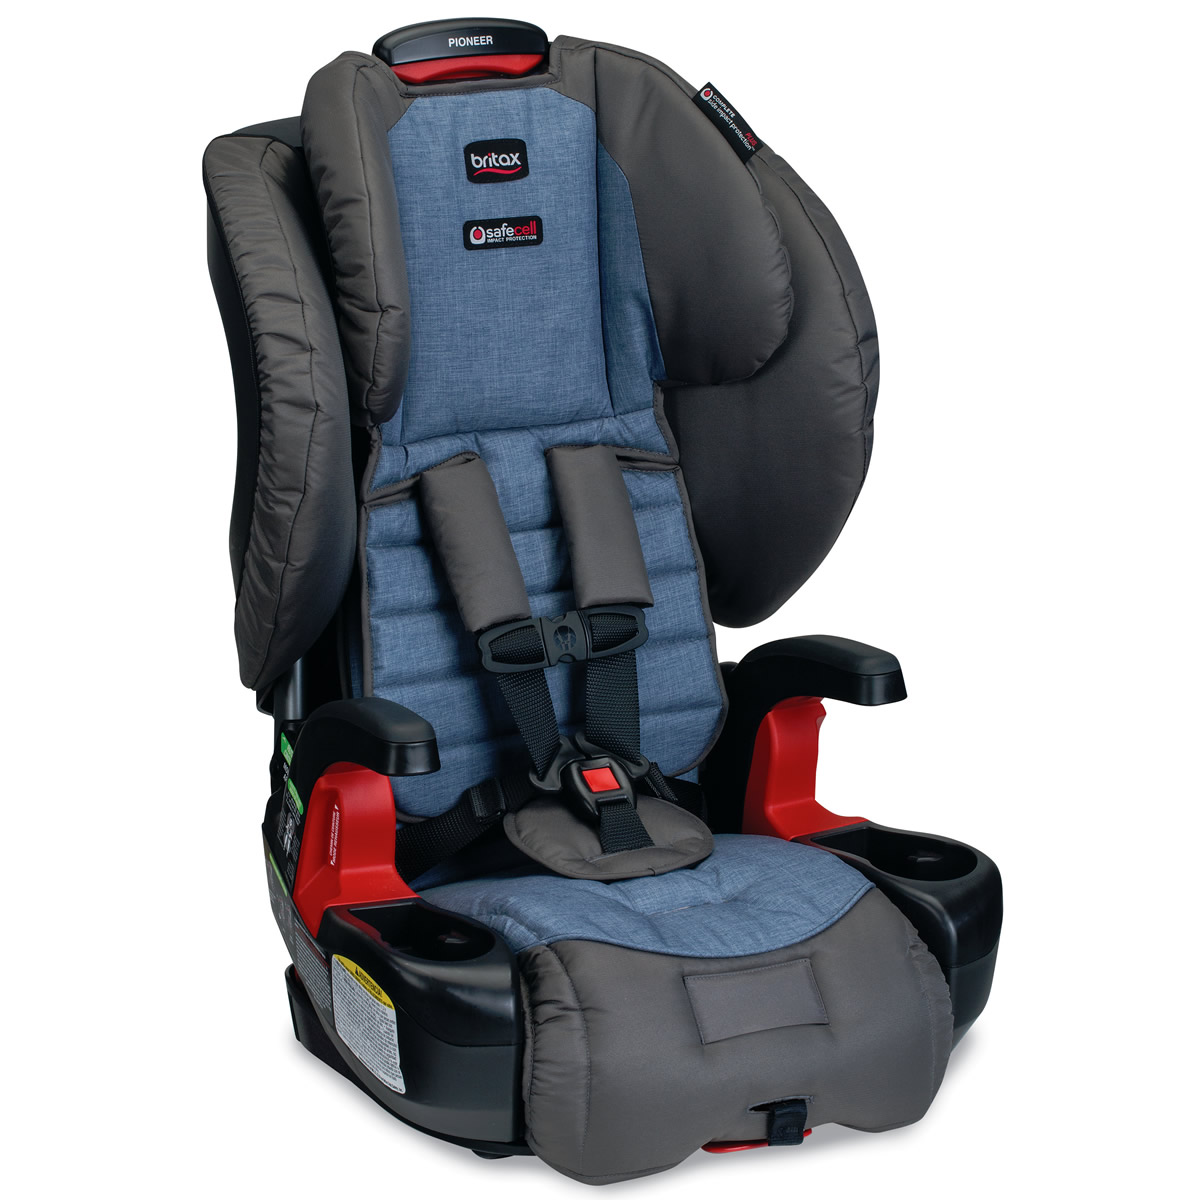 britax pioneer g1 1 harness 2 booster car seat pacifica. Black Bedroom Furniture Sets. Home Design Ideas